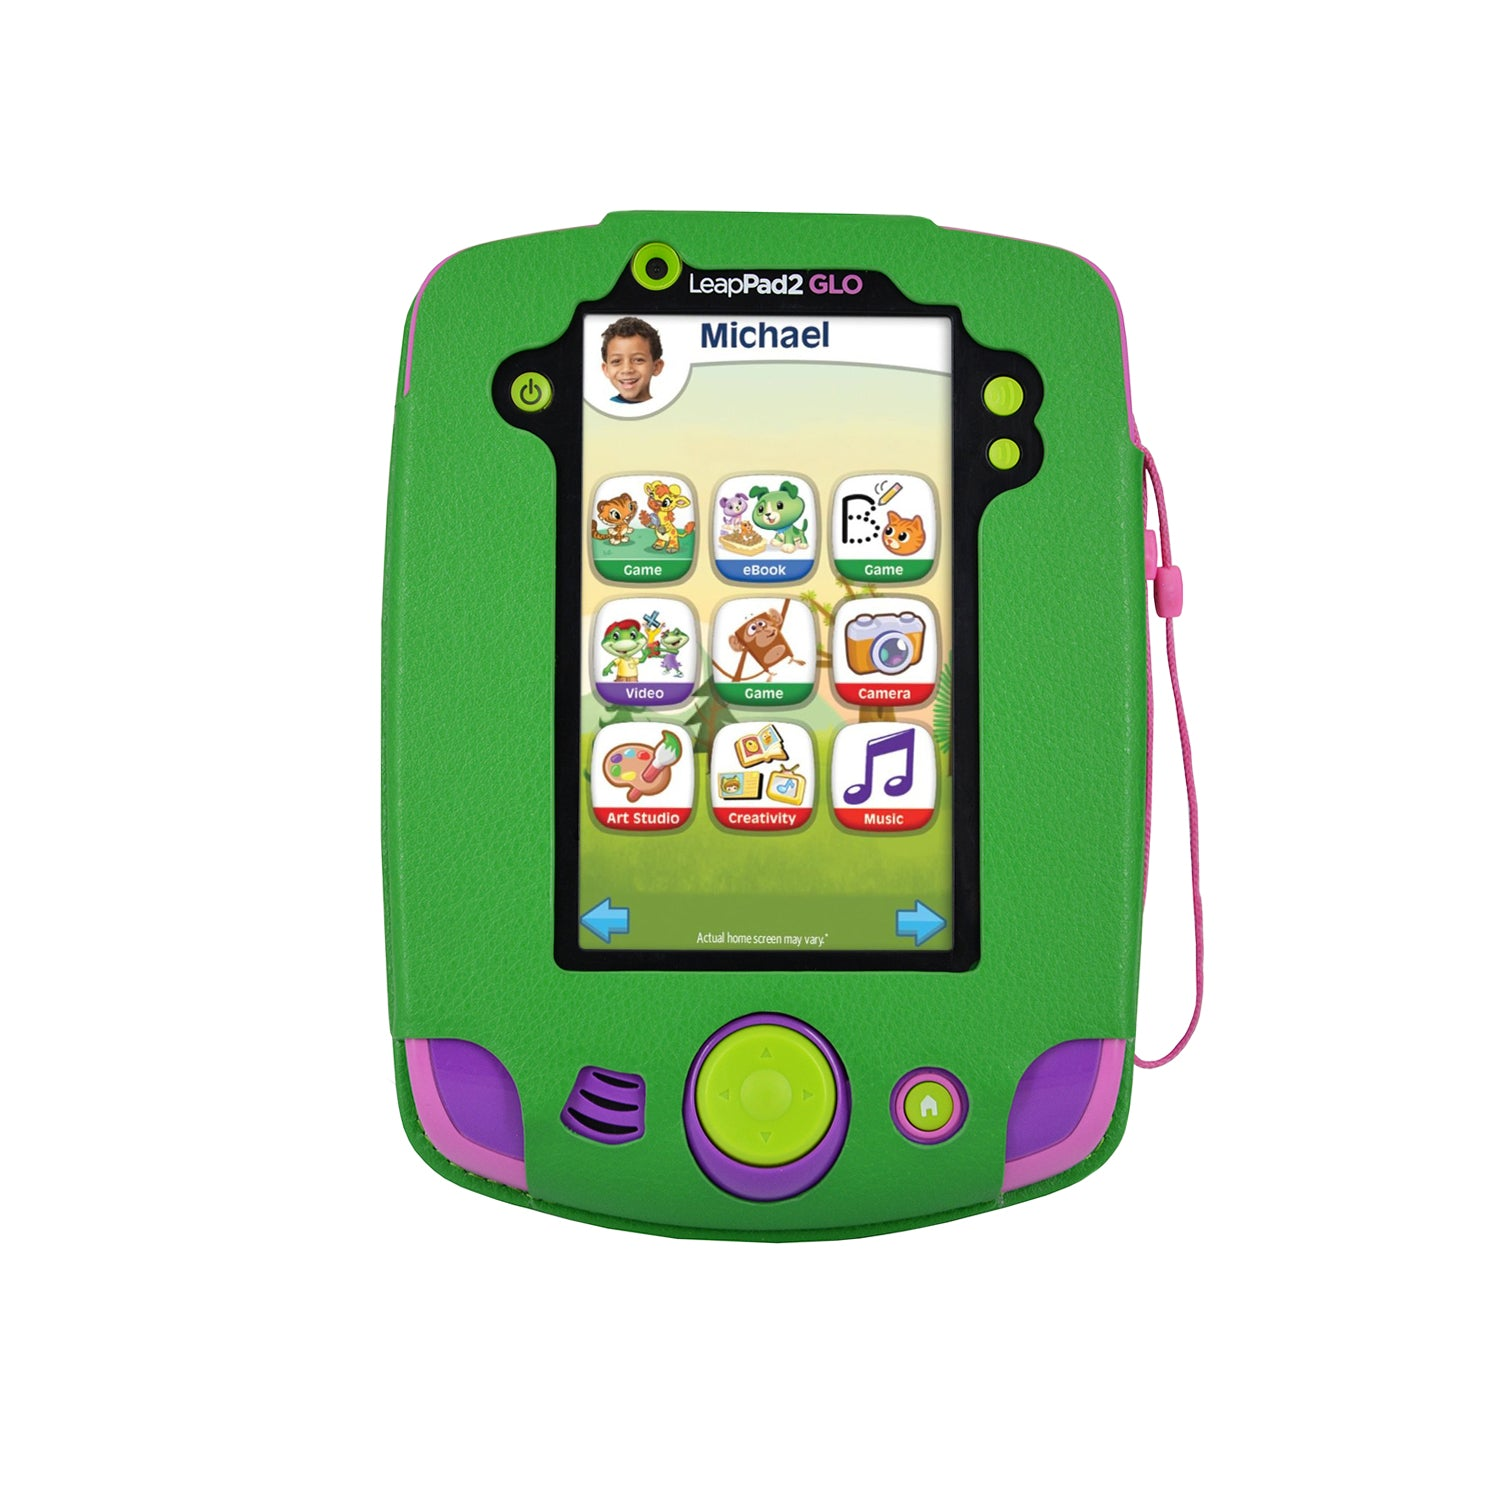 Admirable Xcivi Pu Leather Cover Case For Leapfrog Leappad Glo 5 Download Free Architecture Designs Rallybritishbridgeorg